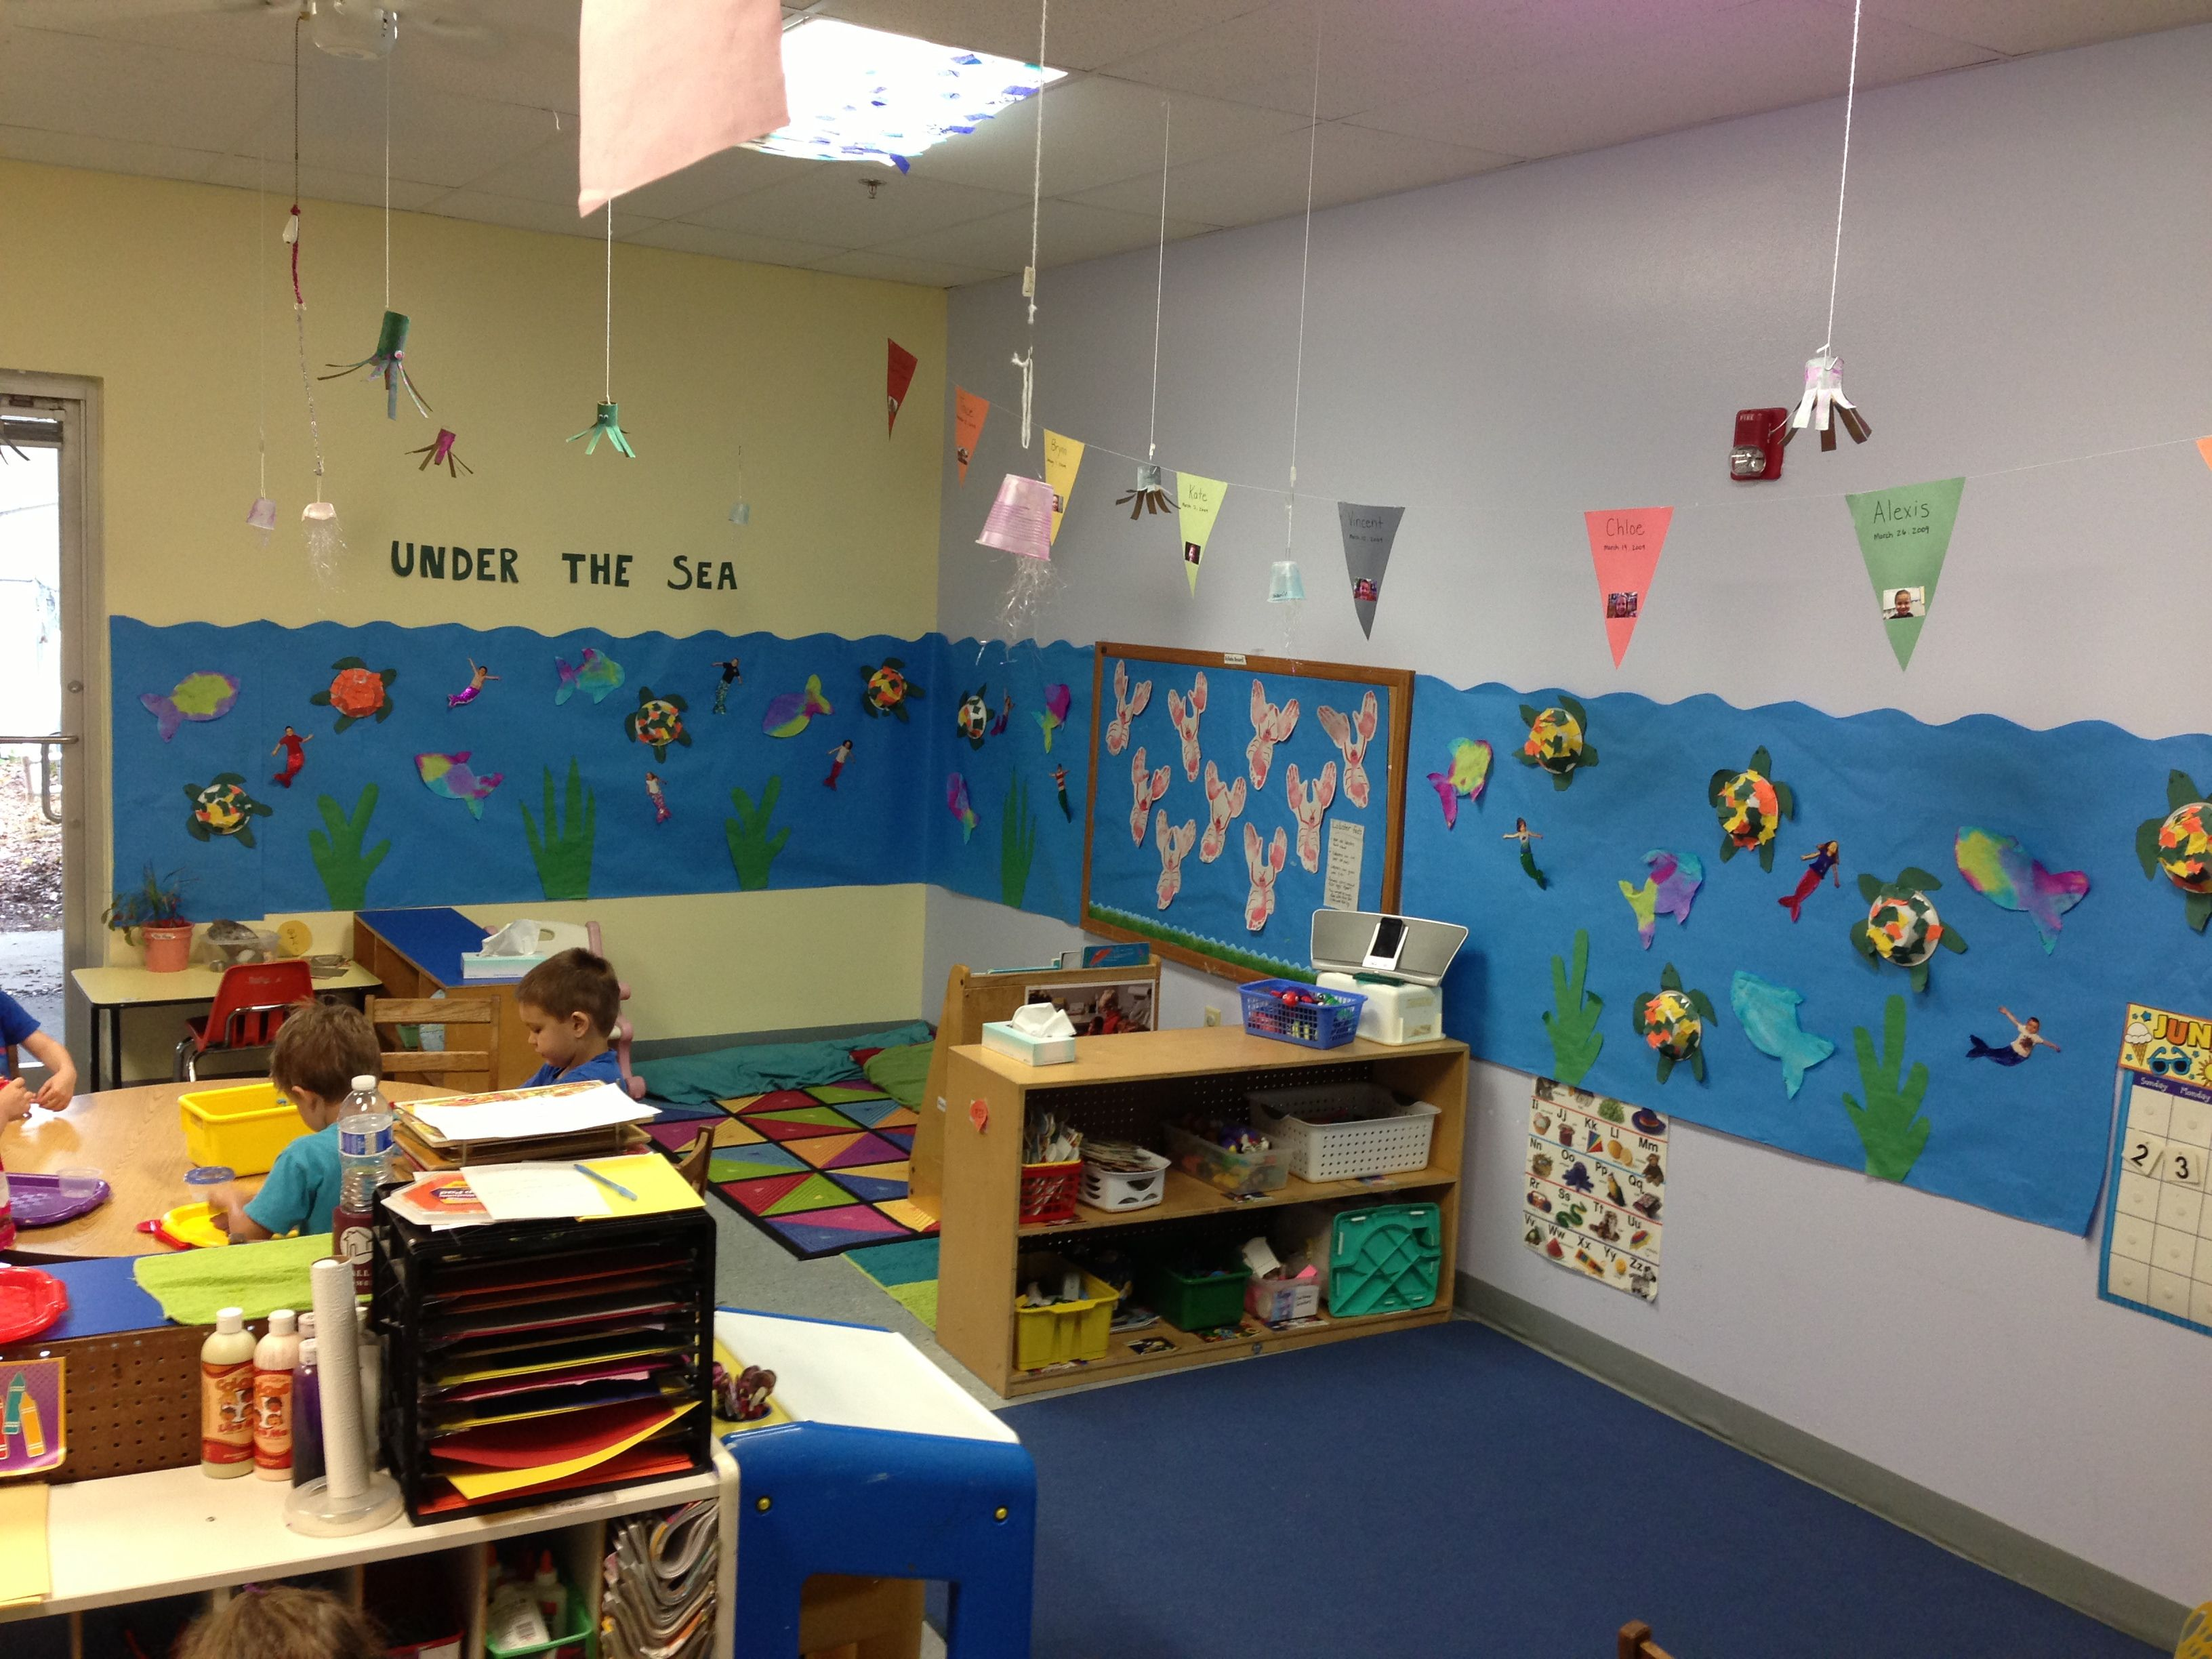 Classroom Decorating Ideas Ocean Theme ~ Under the sea ocean week fun way to decorate your